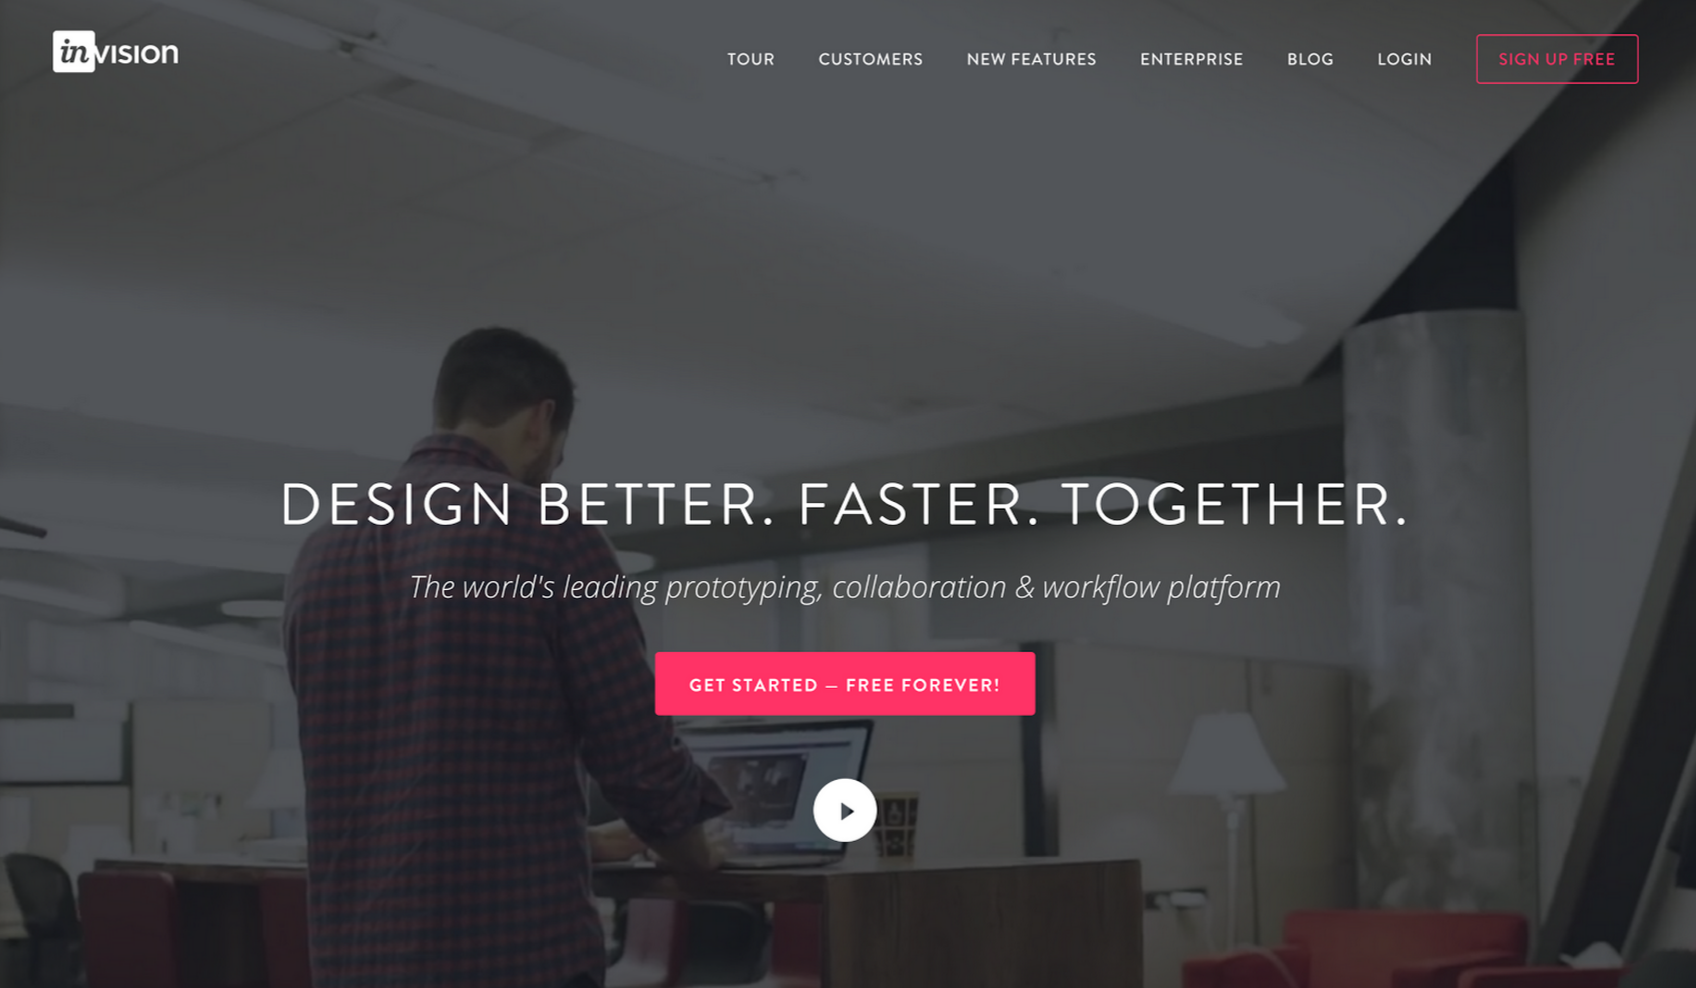 Invision uses a bright pink color for it's CTA.